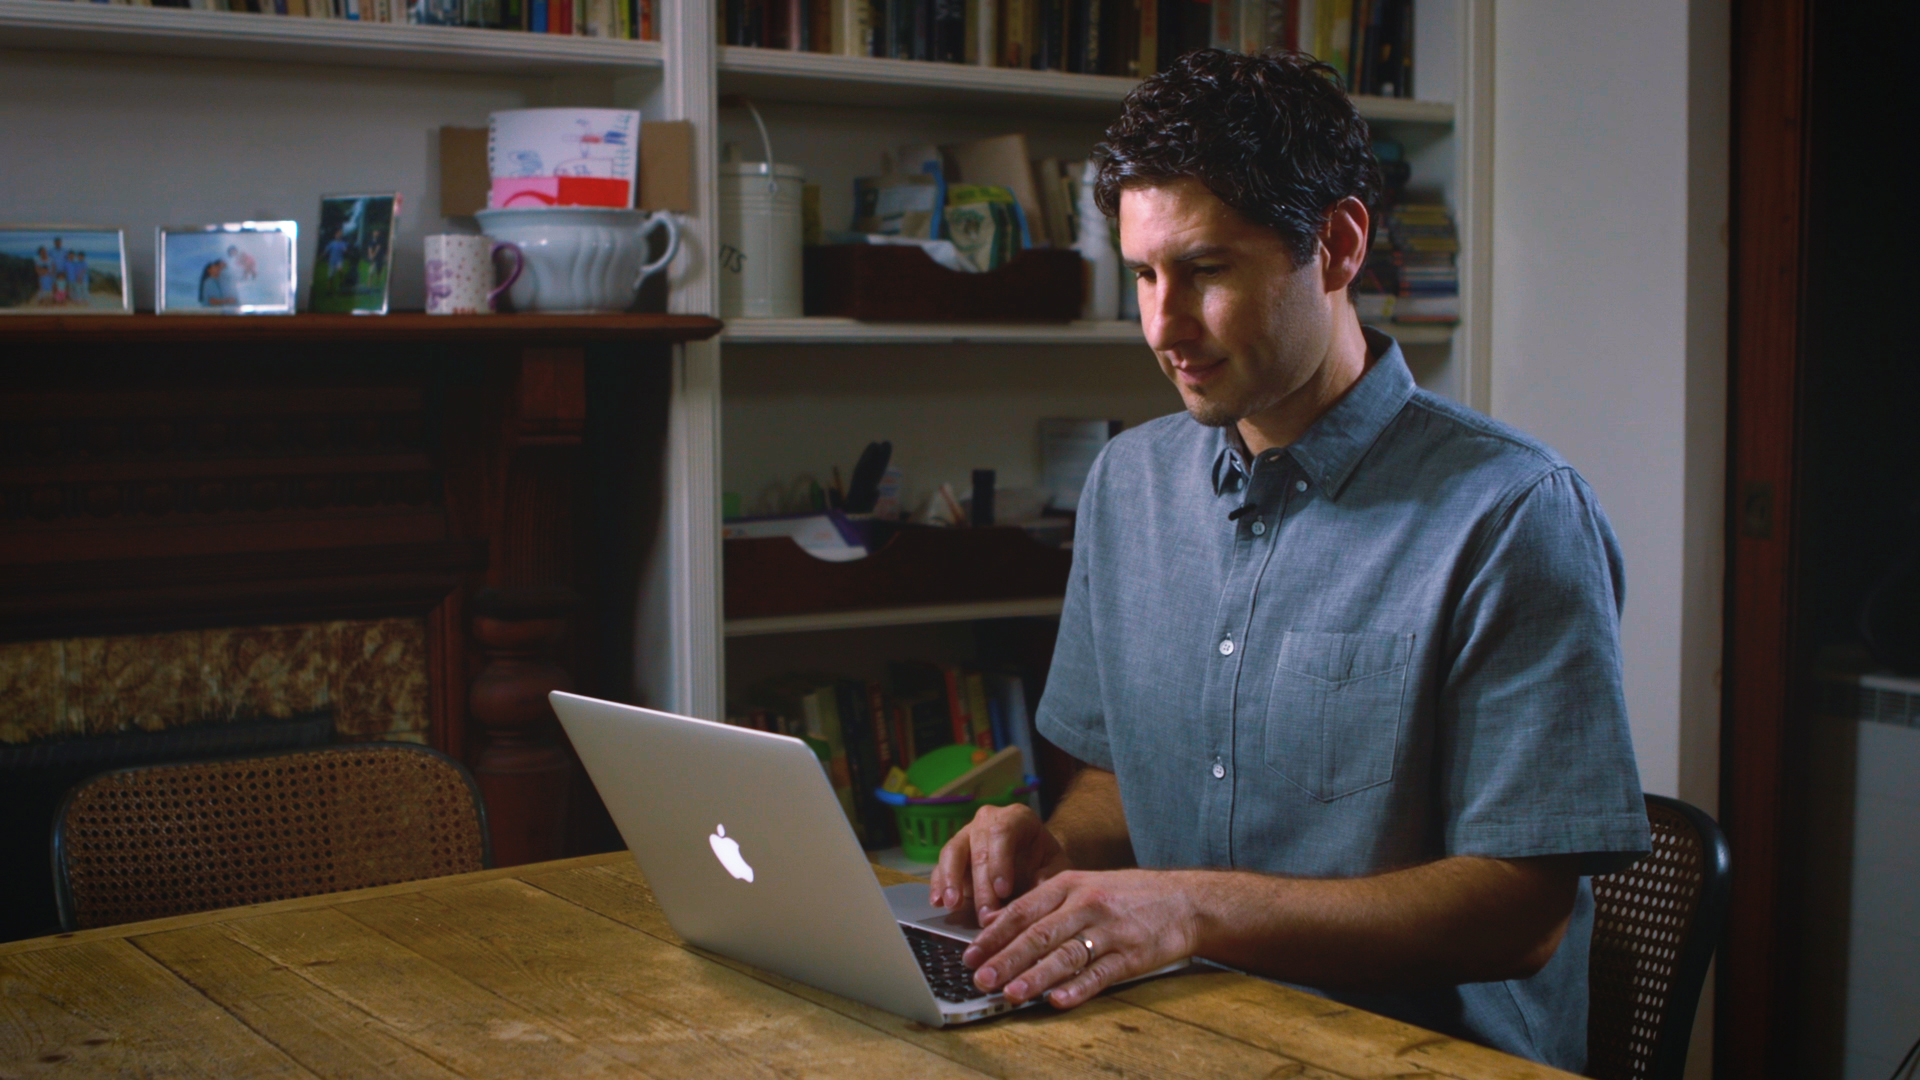 Author Matt de la Pena in a shoot for Dolly Parton's Imagination Library.